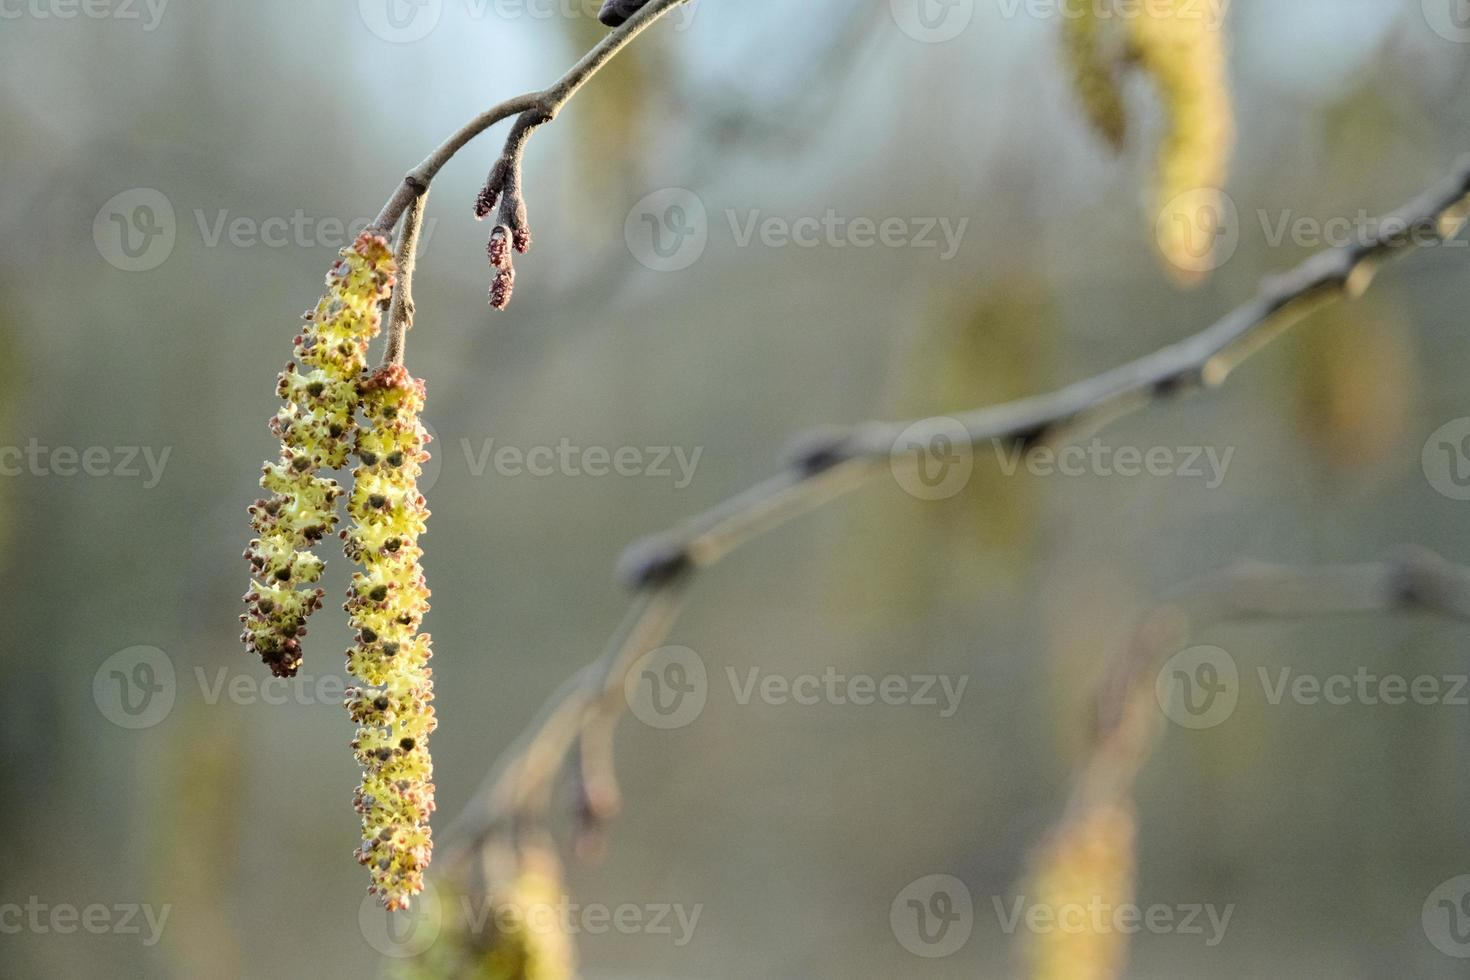 willow tree branch with young blossom catkins in spring garden photo